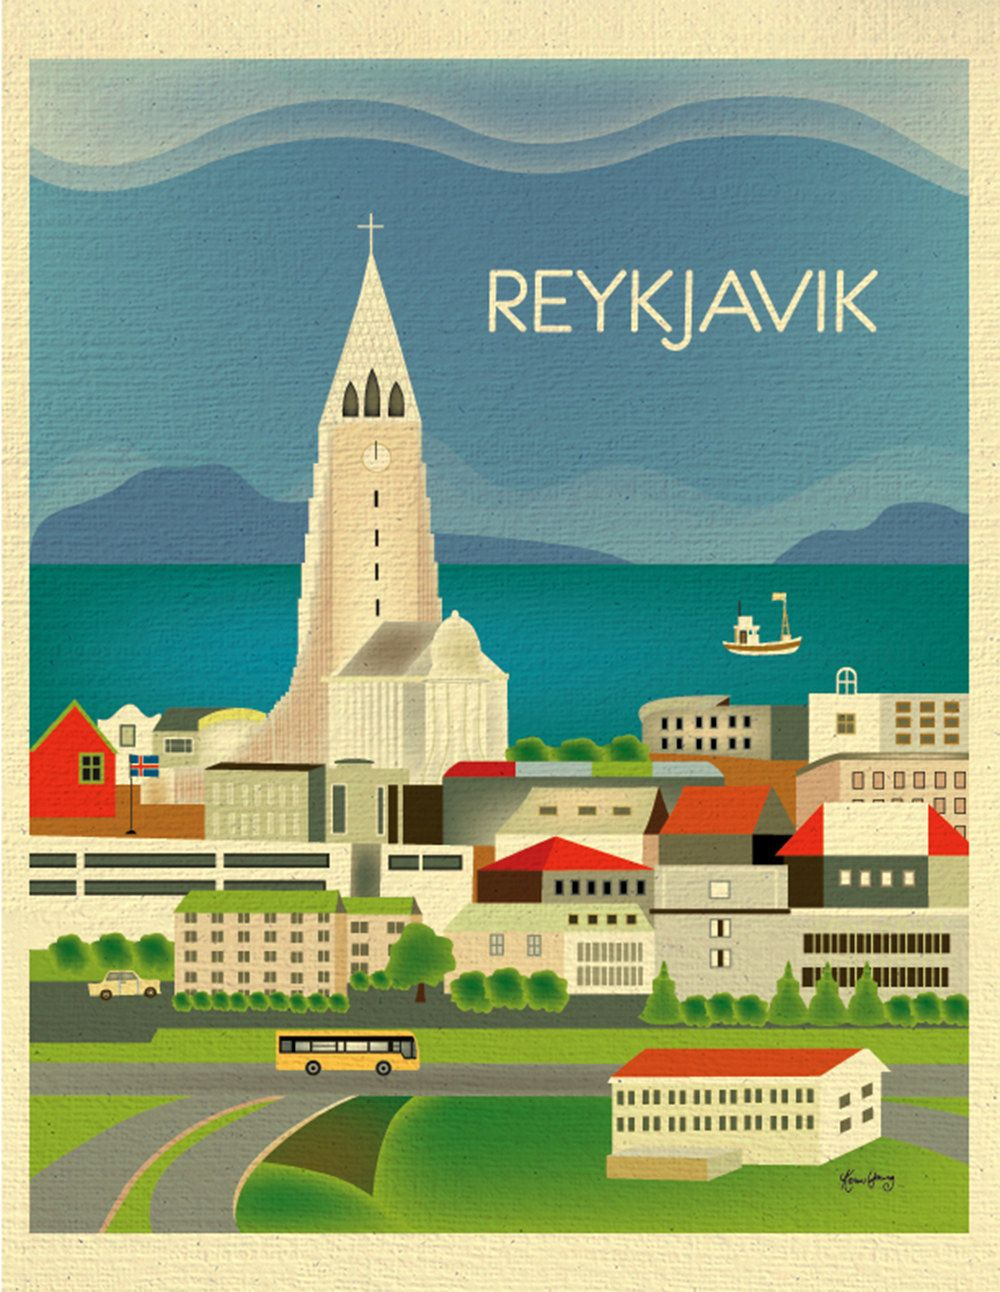 Reykjavik, Iceland Vertical Destination Travel Print - Travel Wall Art - for Home, Office, and Nursery - style E8-O-REY by loosepetals on Etsy